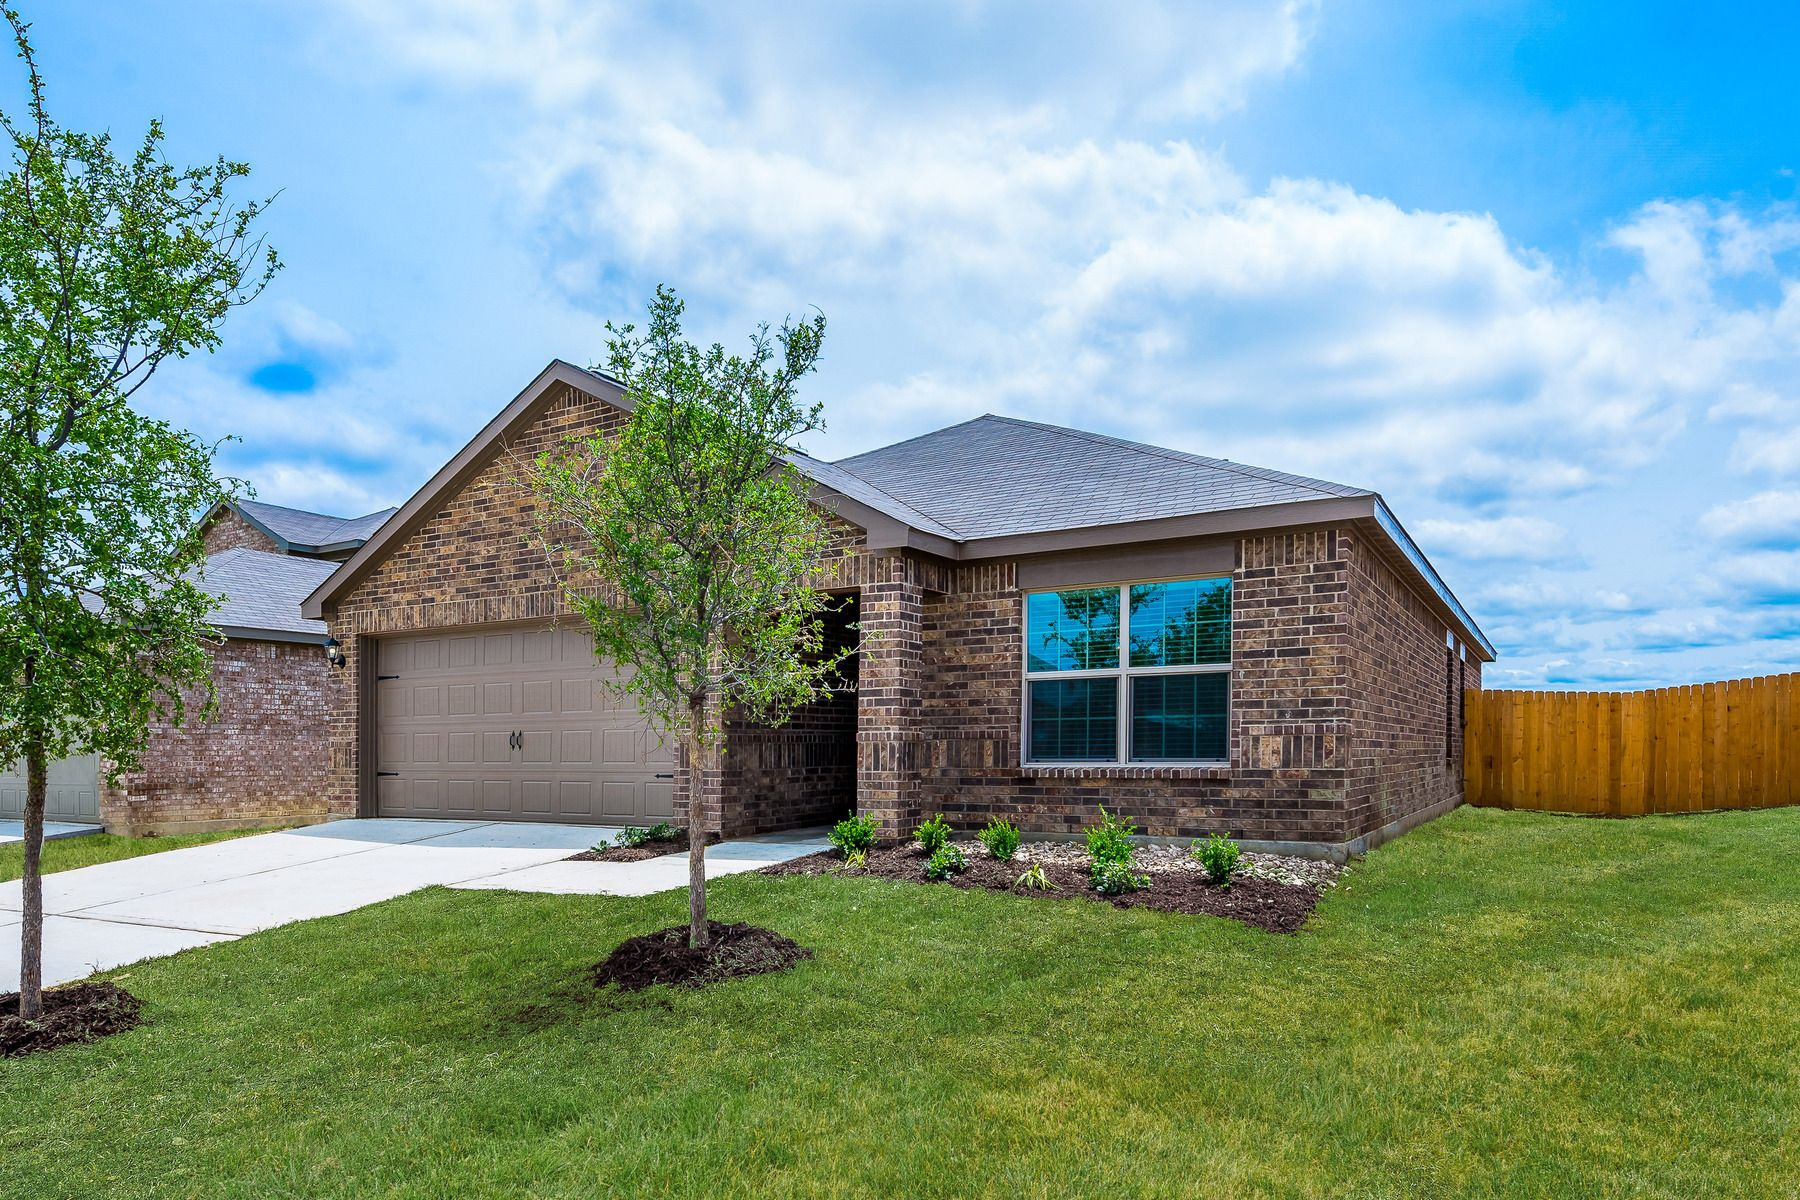 The Blanco by LGI Homes:This home has incredible curb appeal.